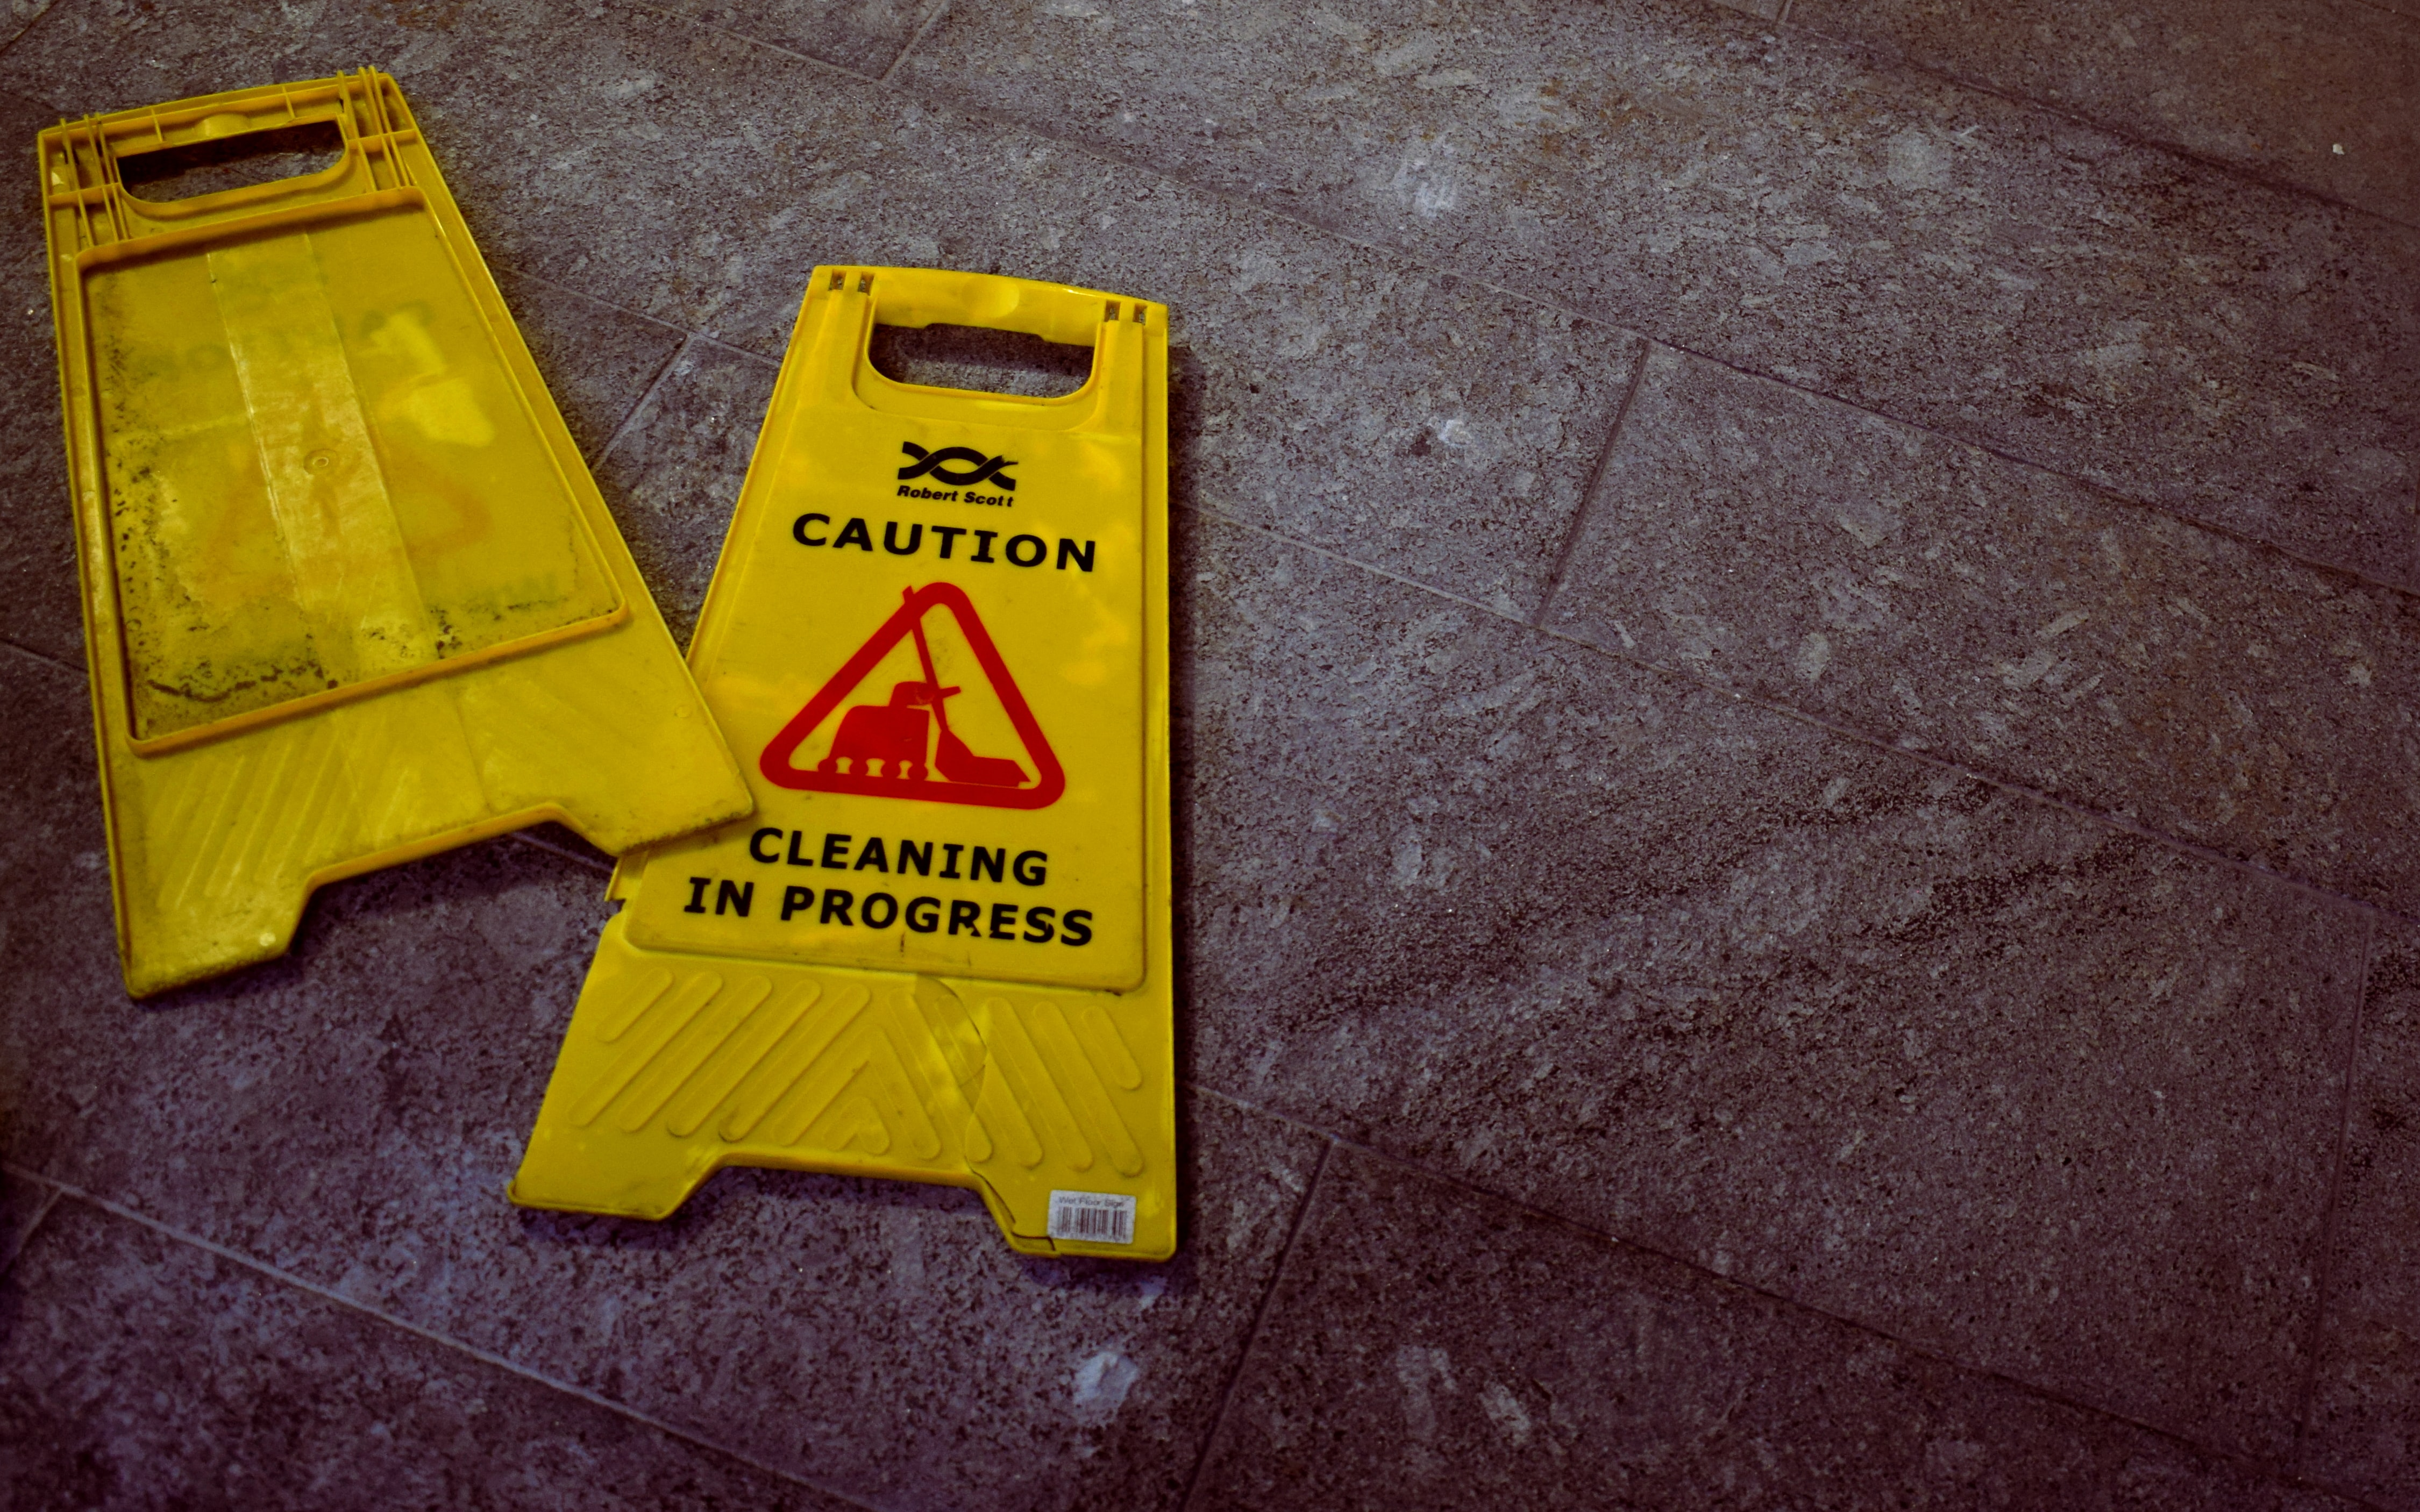 The future of health and safety wear in the workplace